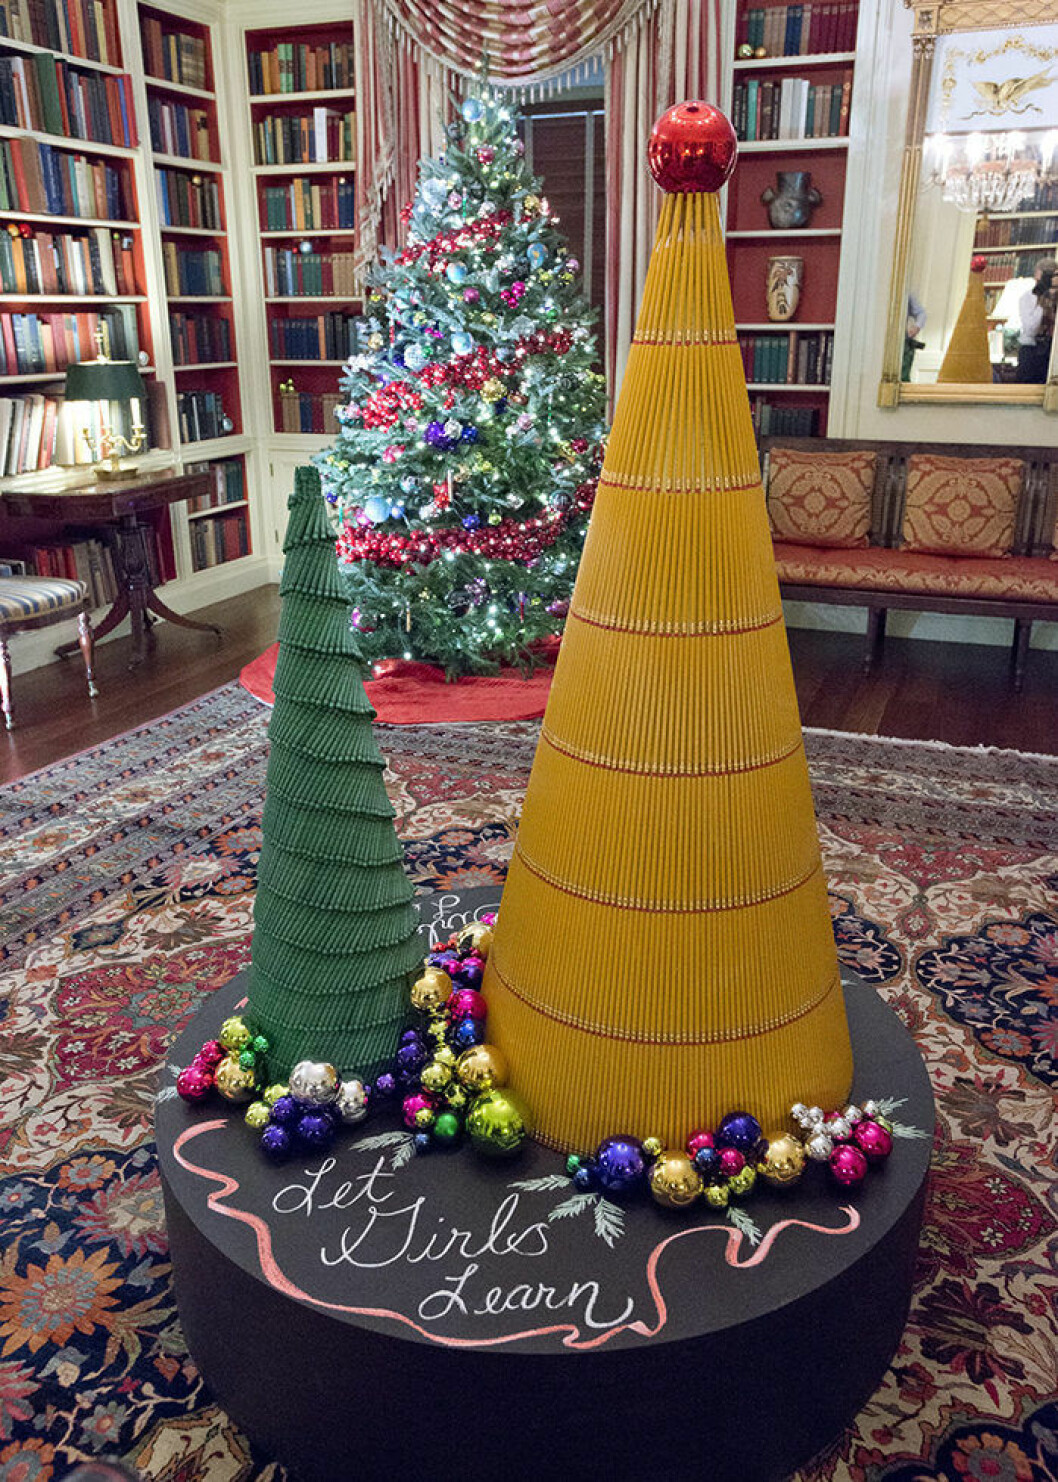 "The 2016 White House Christmas decorations are previewed for the press at the White House in Washington, DC on Tuesday, November 29, 2016. The Gift of Education is brought to life in The Library, highlighting the more than 2,700 books housed there. Rulers will rim the base of the holiday trees while crayons and pencils create additional standalone trees. The colorful ornaments on display will spell out the word ?girls? in 12 different languages, paying homage to the First Lady?s Let Girls Learn initiative. The first lady's office released the following statement to describe those decorations, ""This year?s holiday theme, 'The Gift of the Holidays,' reflects on not only the joy of giving and receiving, but also the true gifts of life, such as service, friends and family, education, and good health, as we celebrate the holiday season."" Credit: Ron Sachs / CNP - NO WIRE SERVICE - Photo: Ron Sachs/Consolidated/dpa (c) DPA / IBL BildbyrÂ"